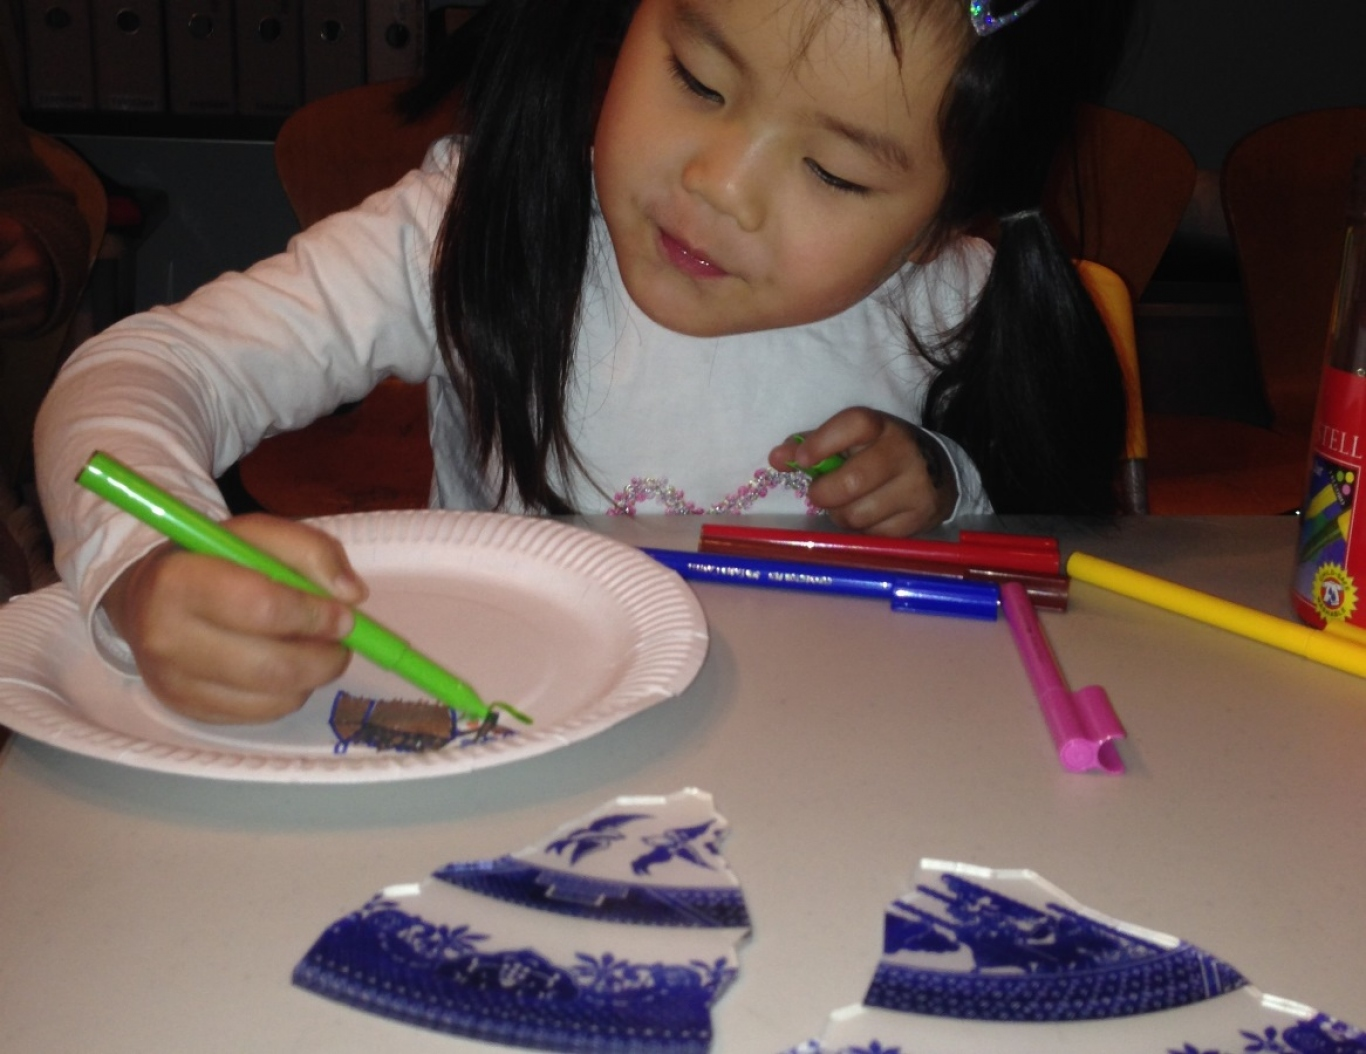 A girl draws her story onto a plate